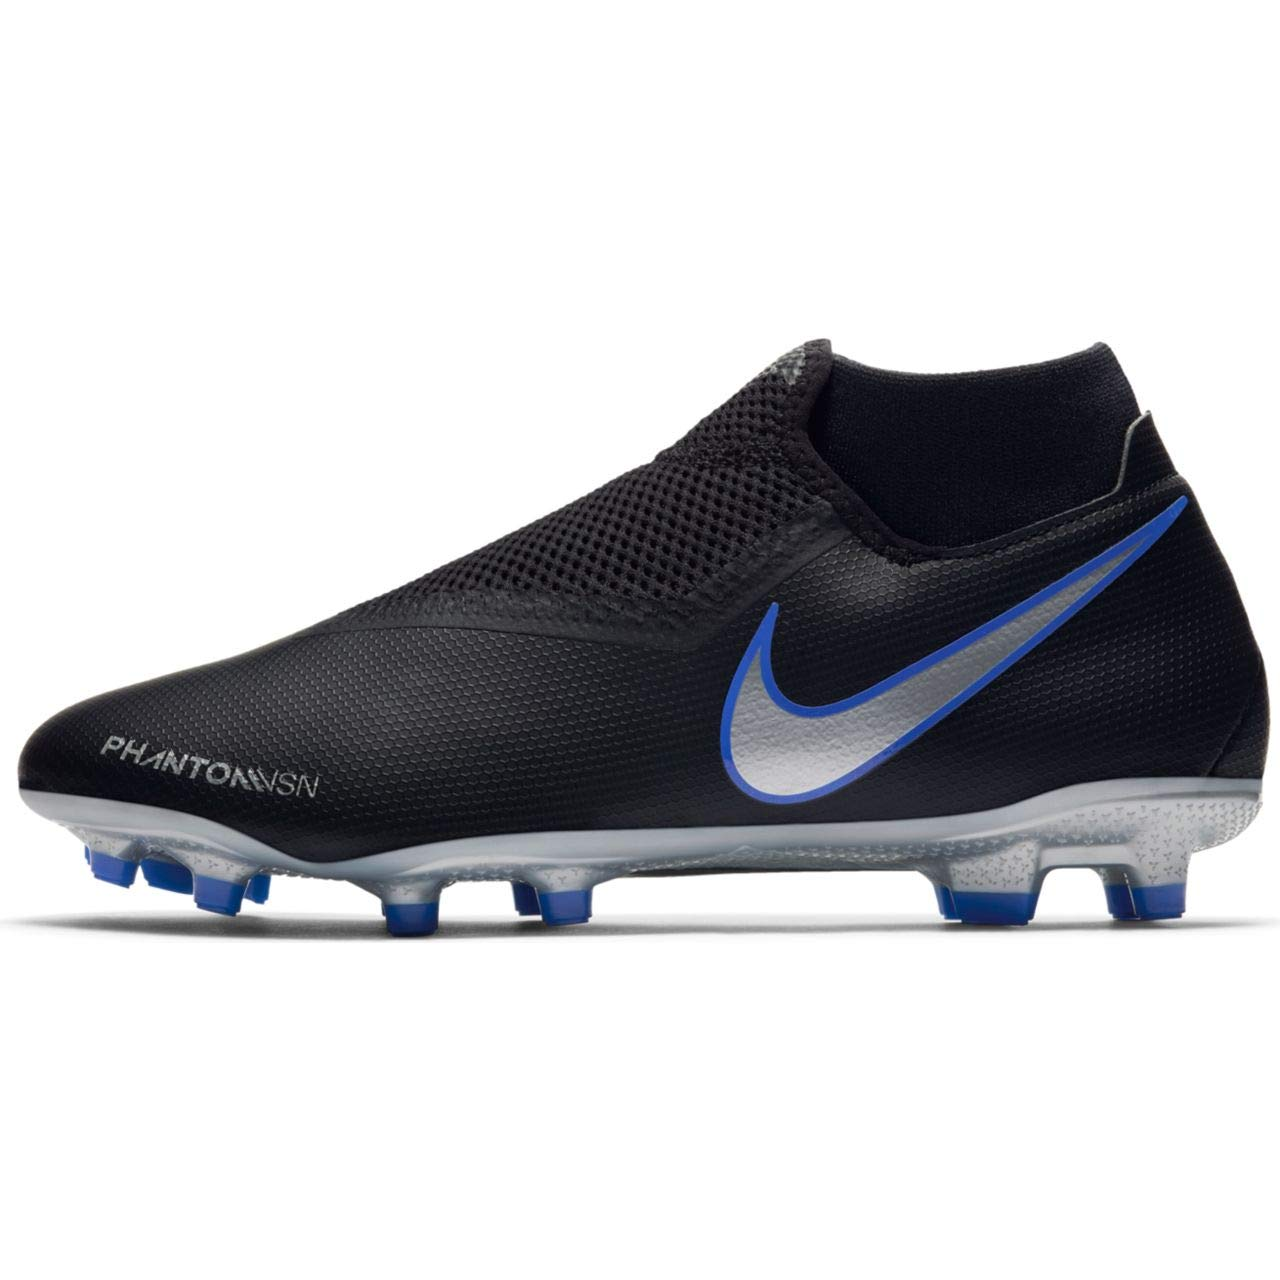 Nike Phantom Vision Academy Men's Firm Ground Soccer Cleats (8 M US, Black/Silver)